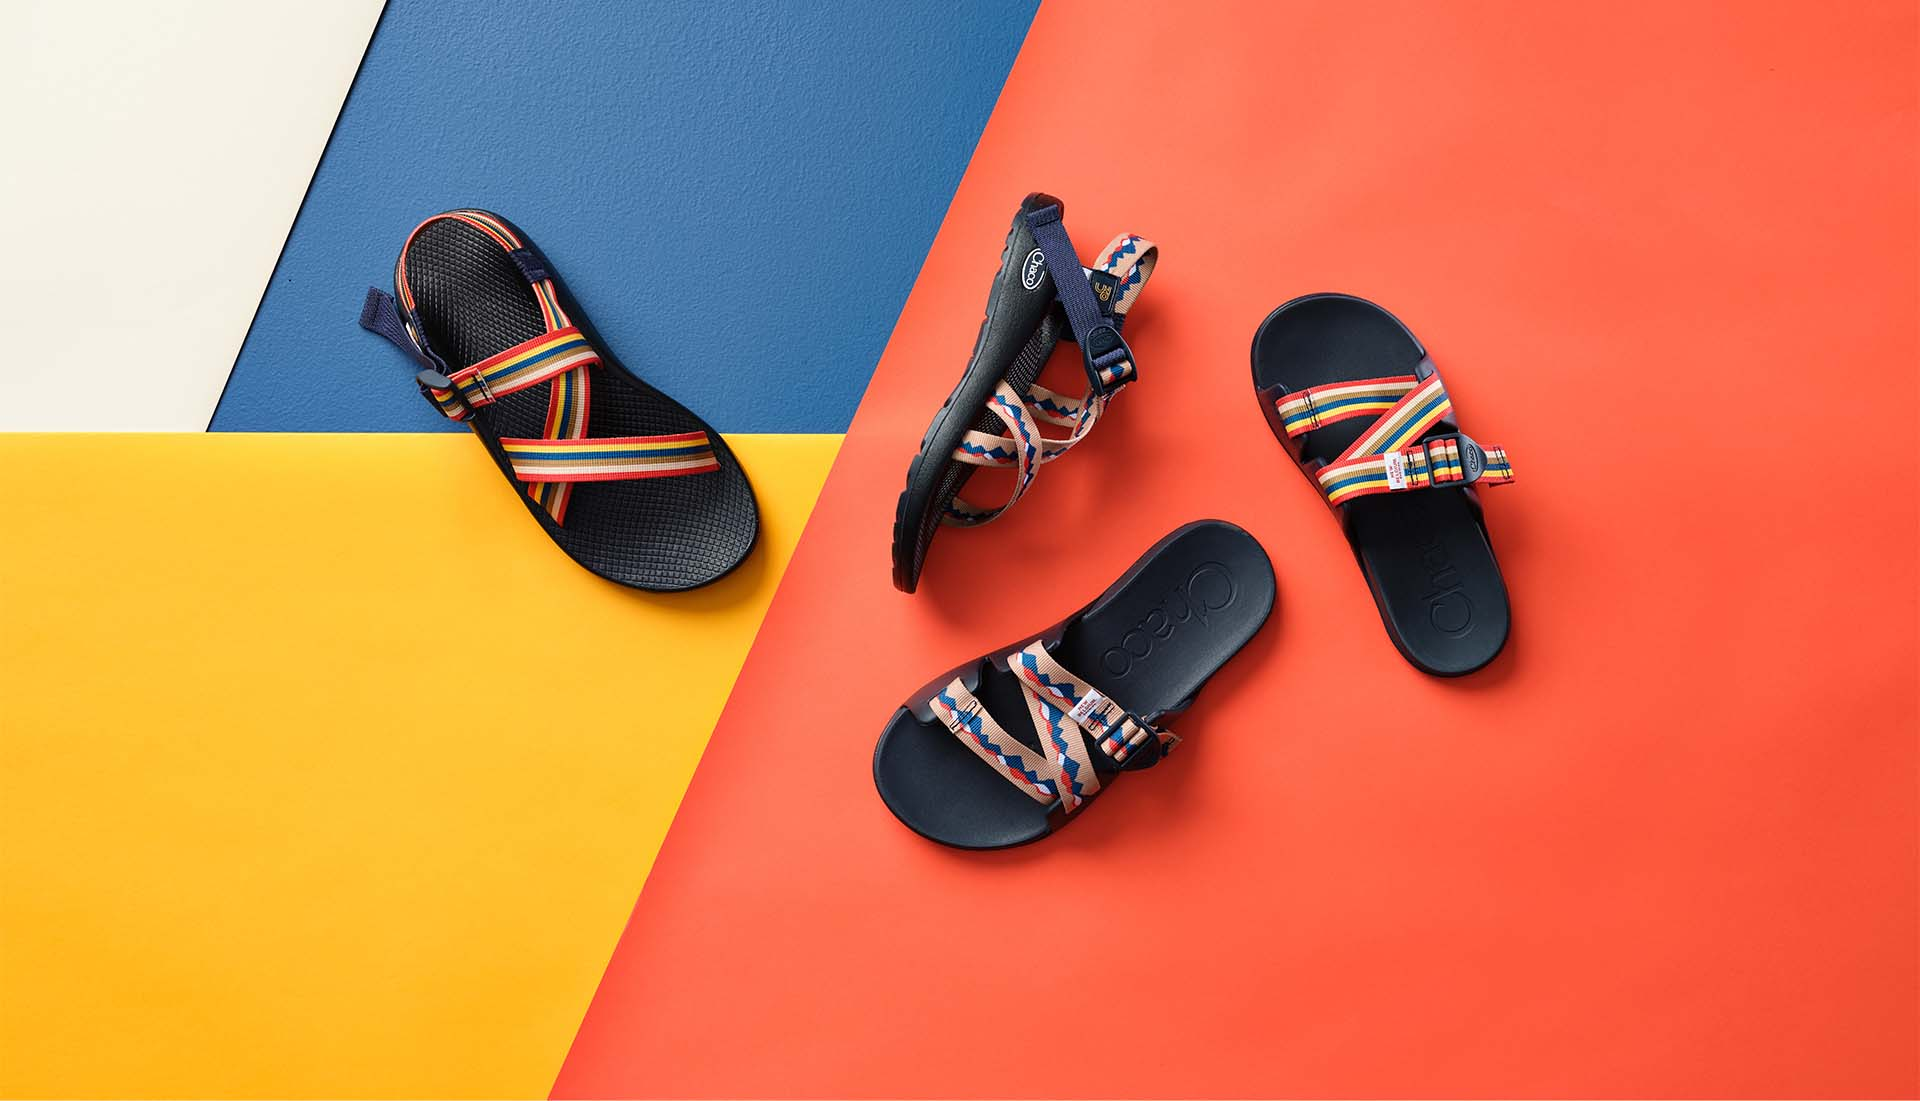 Selection of Chaco and New Belgium Brewing collaborative sandals on a colorful, geometric background.